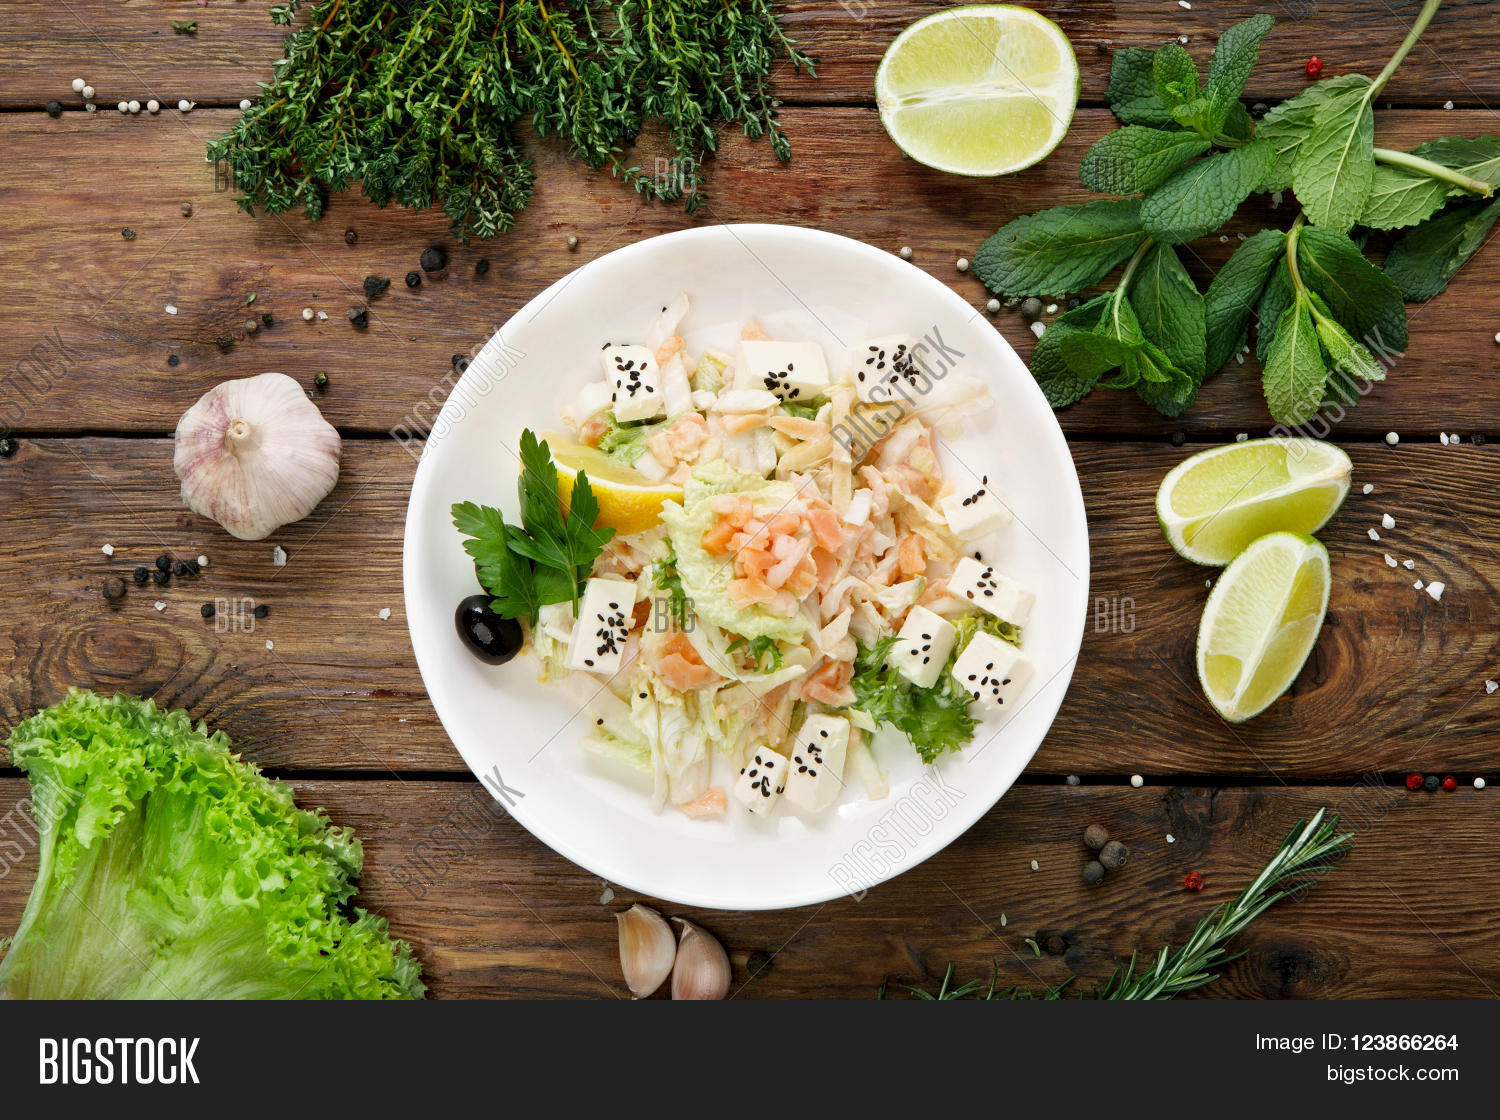 Plate With Food Top View Restaurant Healthy Food Fish Salad Image And Photo Bigstock